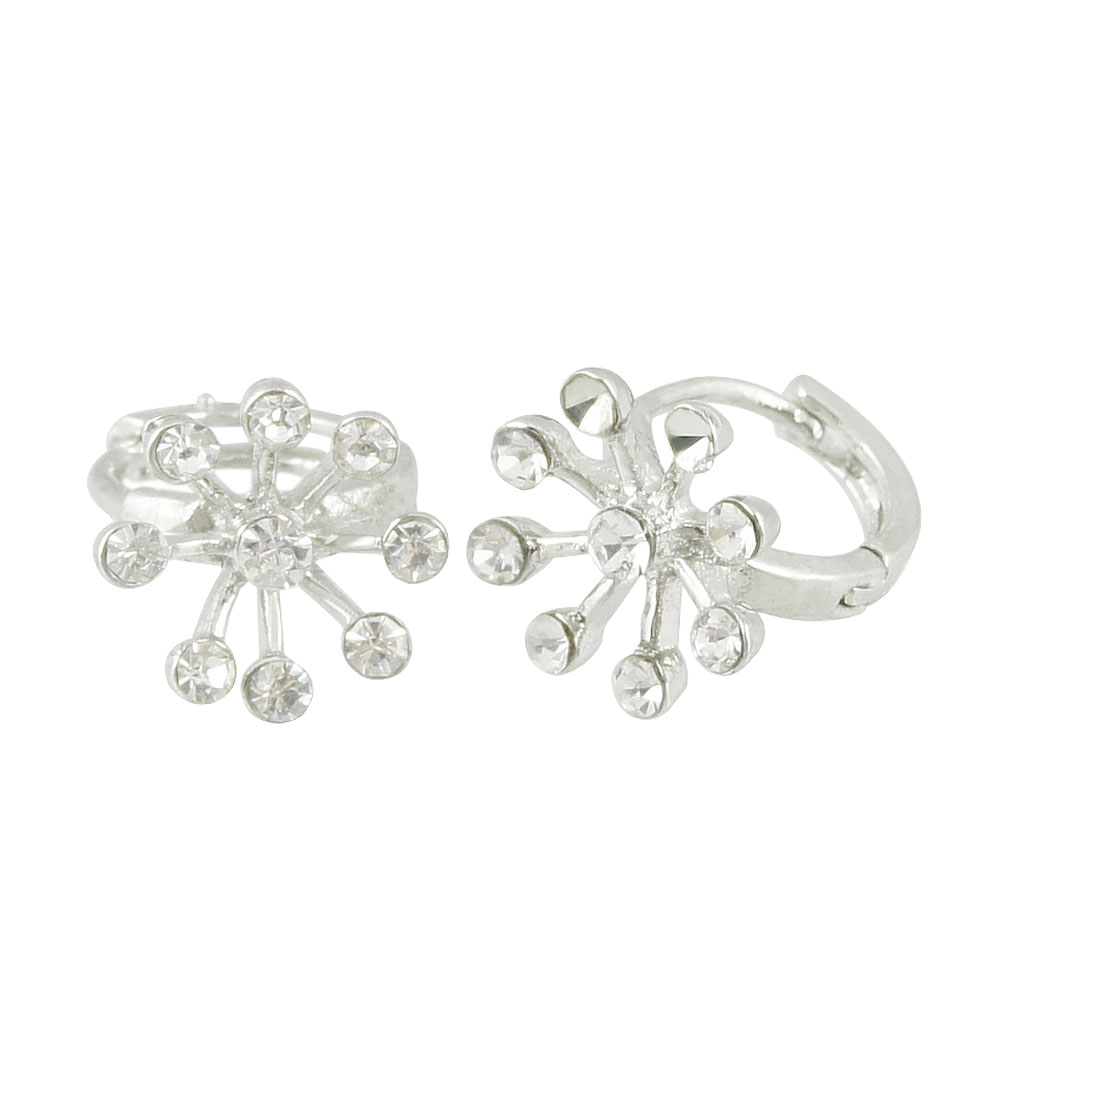 Woman Metallic Silver Tone Floral Rhinestones Mini Hoop Earrings Eardrop